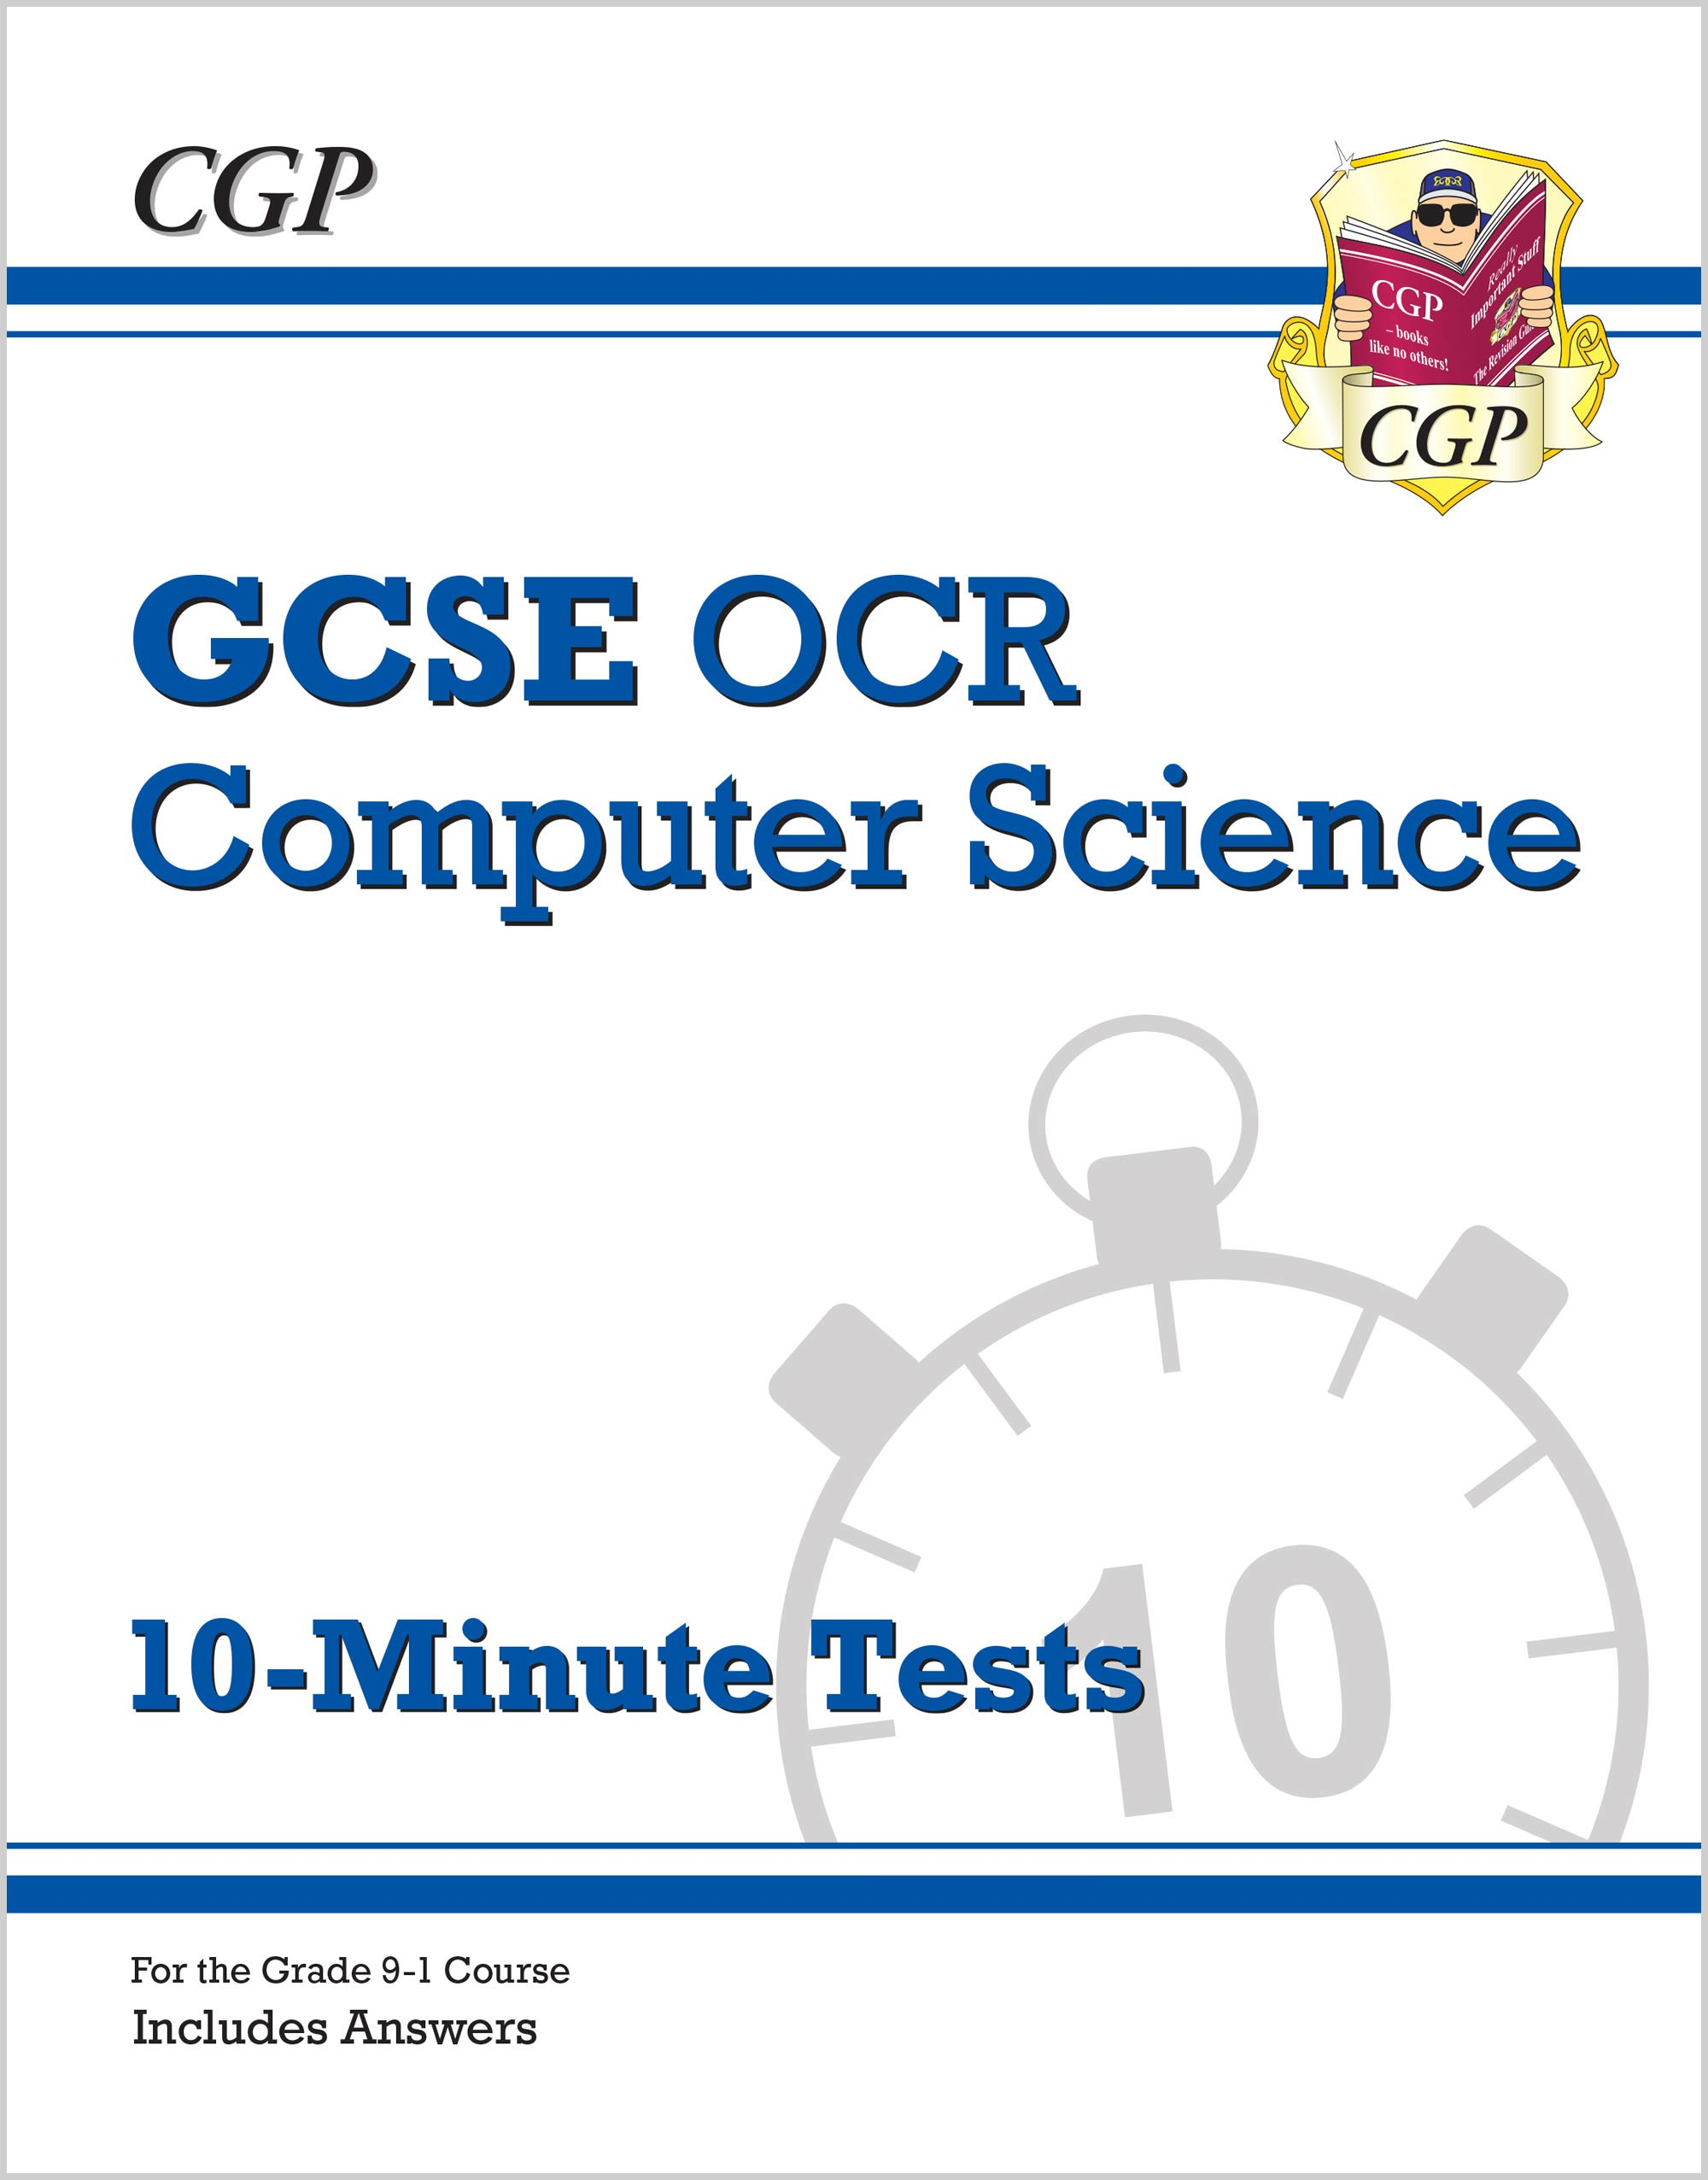 COXP41 - New Grade 9-1 GCSE Computer Science OCR 10-Minute Tests (includes Answers)